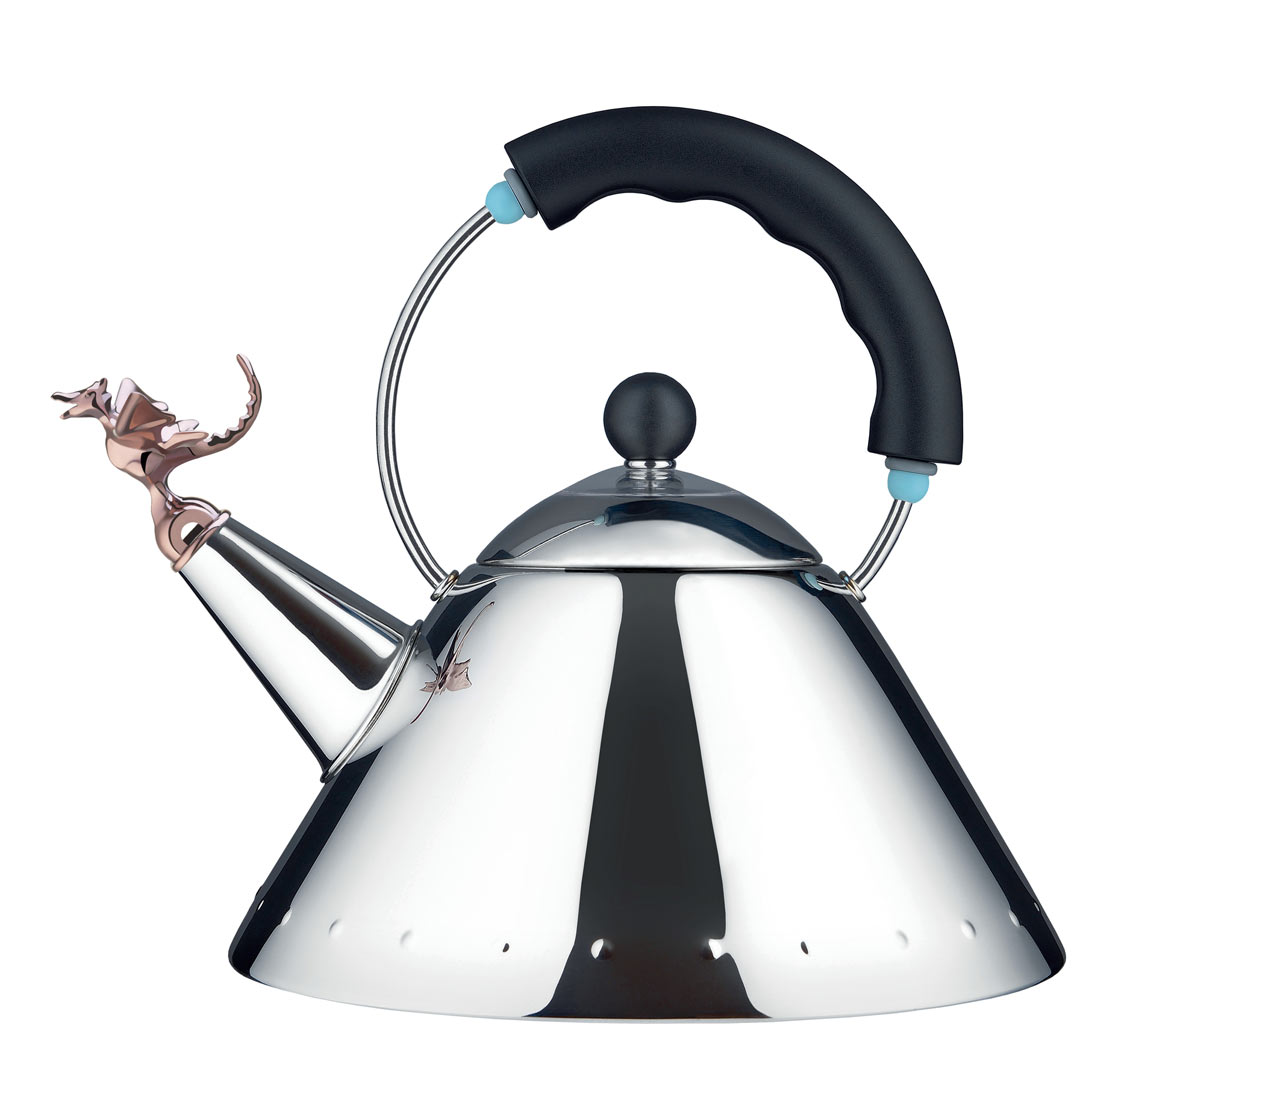 Alessi Launches Fall/Winter 2015 Collection